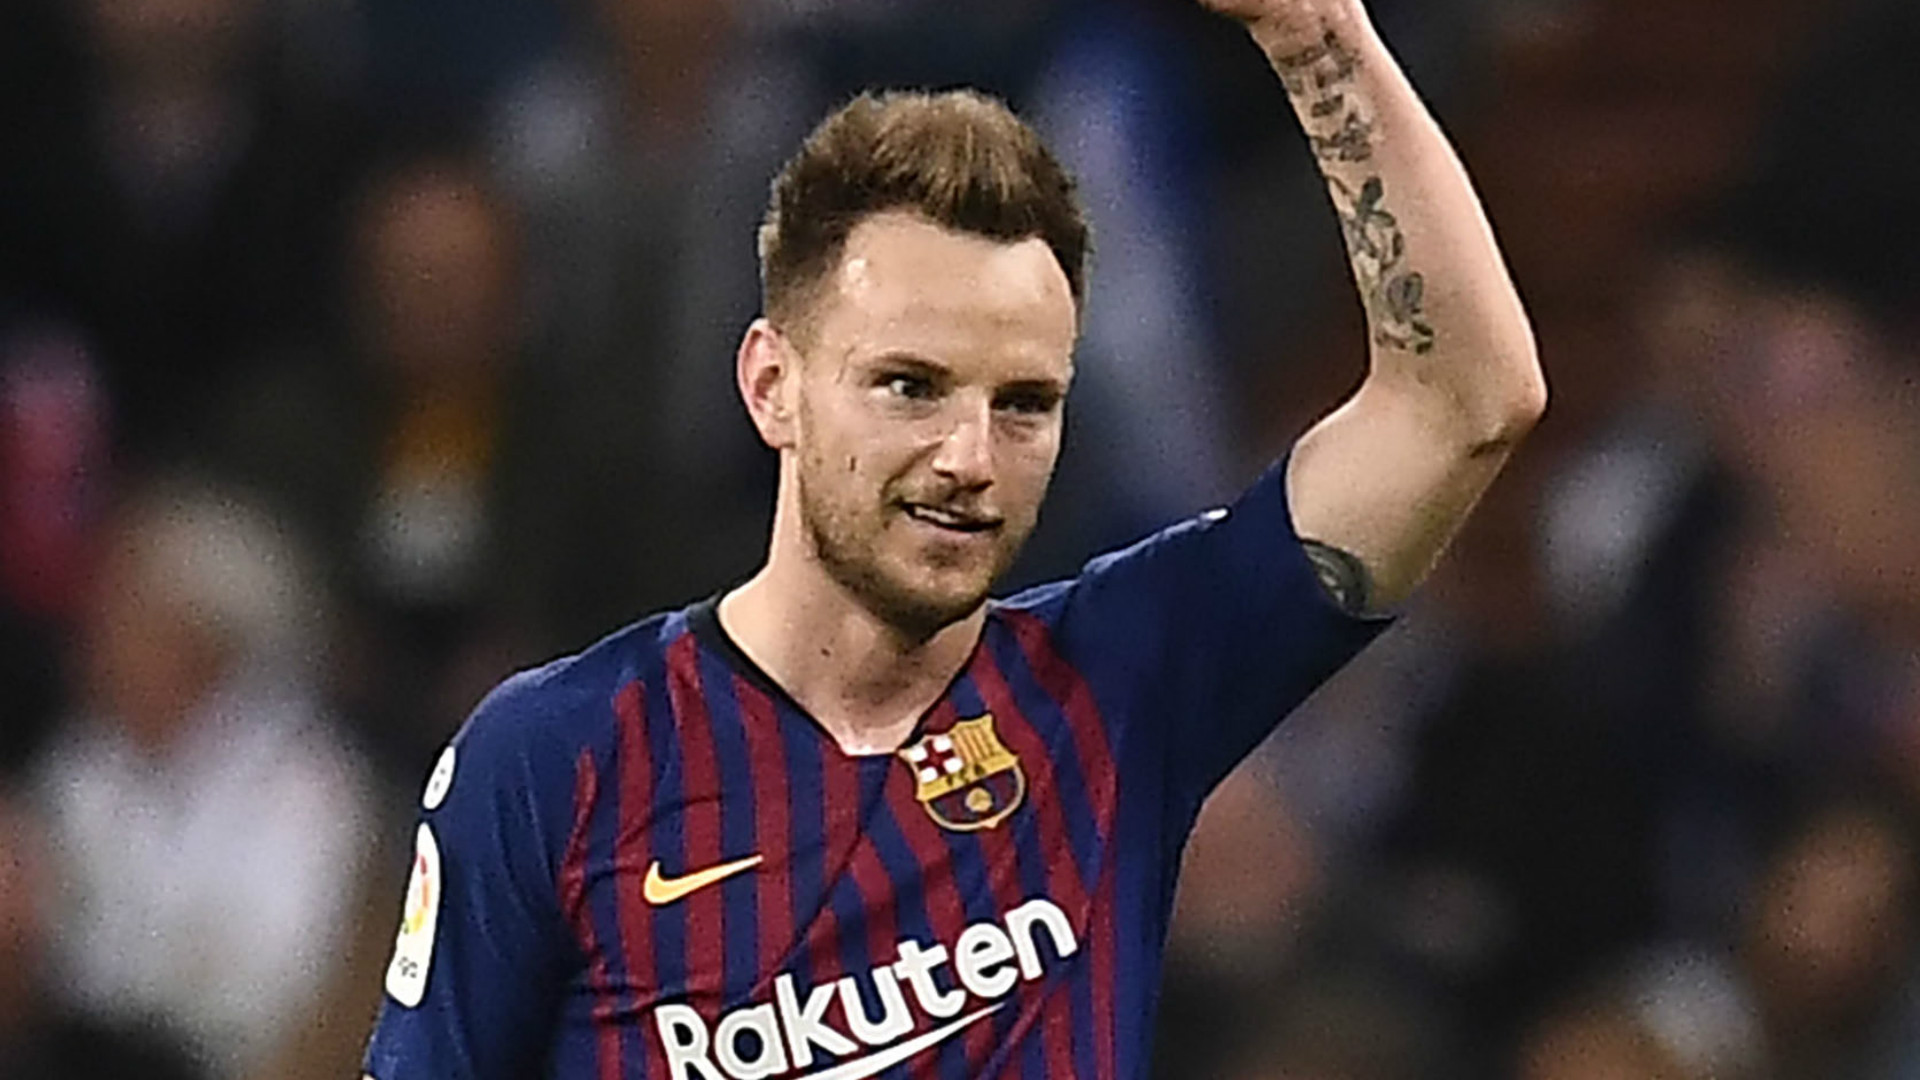 'I'm where I want to be' - Rakitic dismisses reports he could leave Barcelona for Inter